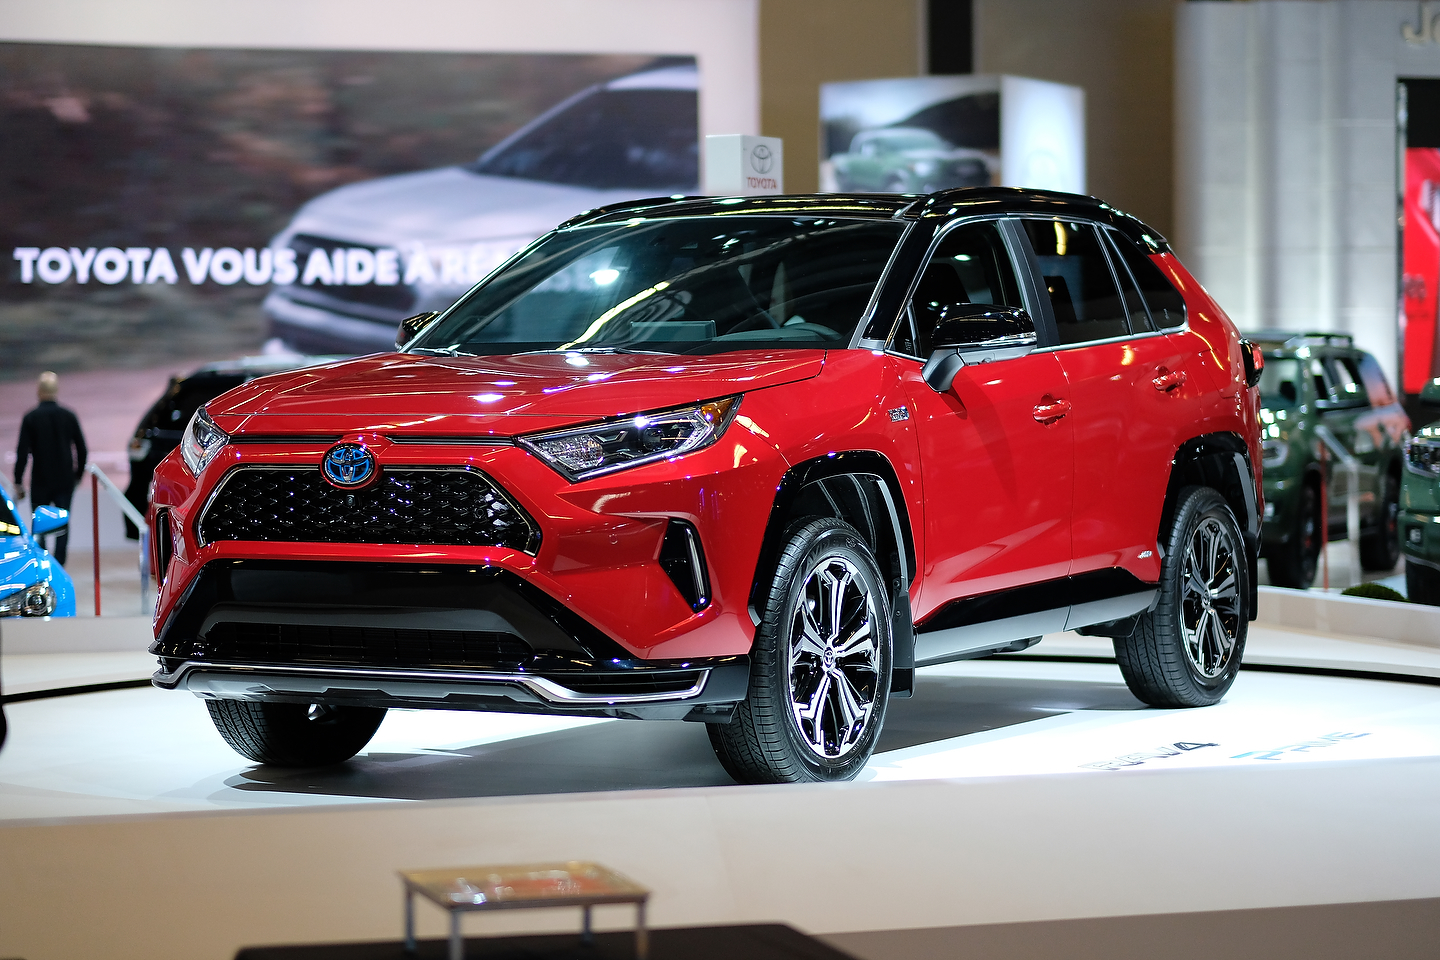 2021 Toyota Rav4 Prime Priced At 39 220 In The Us Motor Illustrated